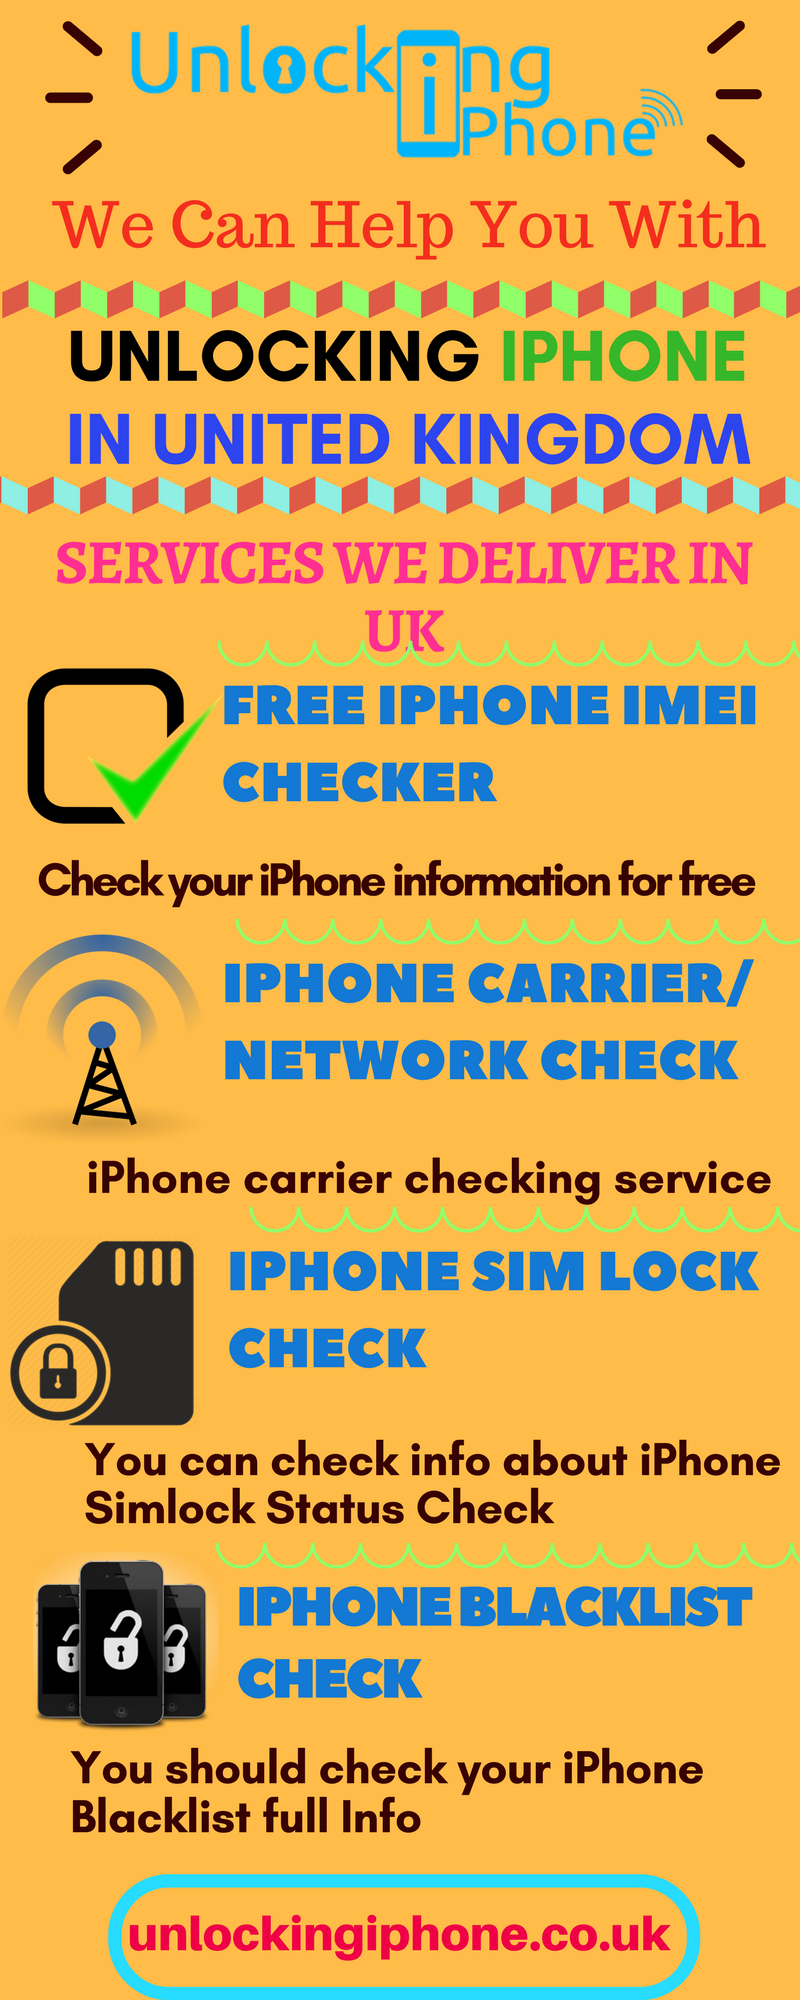 Unlocking Iphone offers different services in UK like Iphone SIM